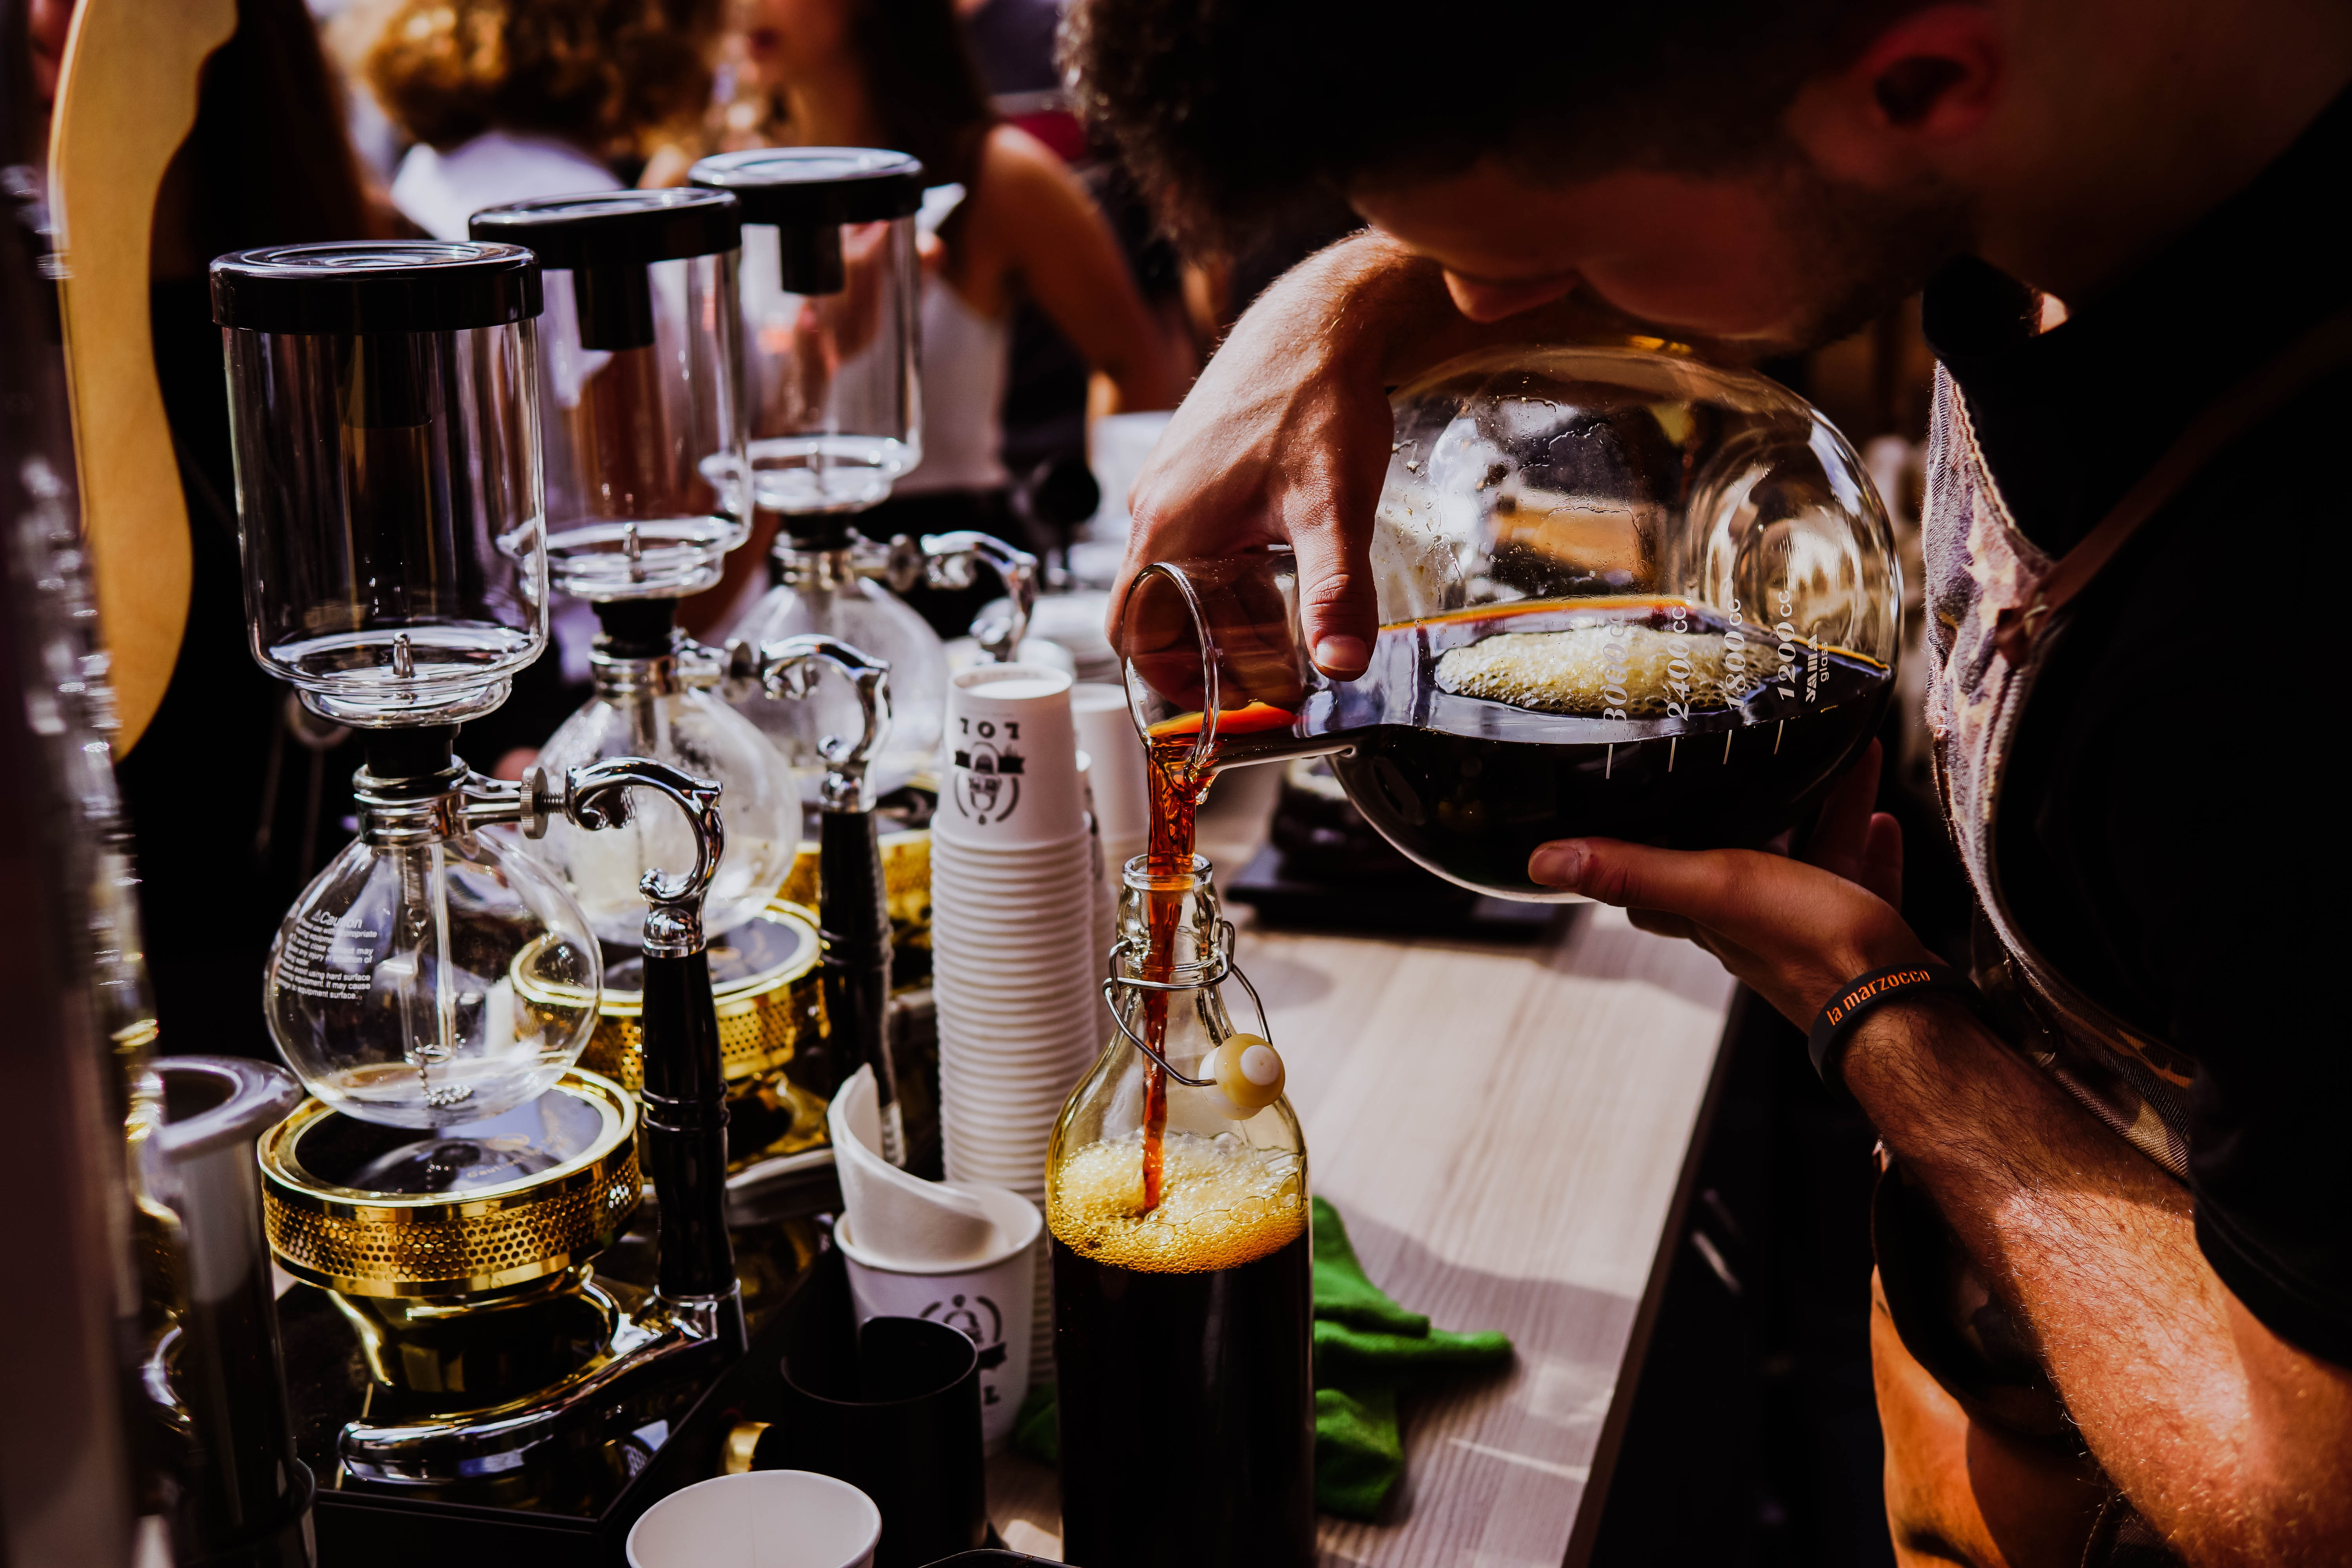 A barista pouring coffee from a jug into a bottle